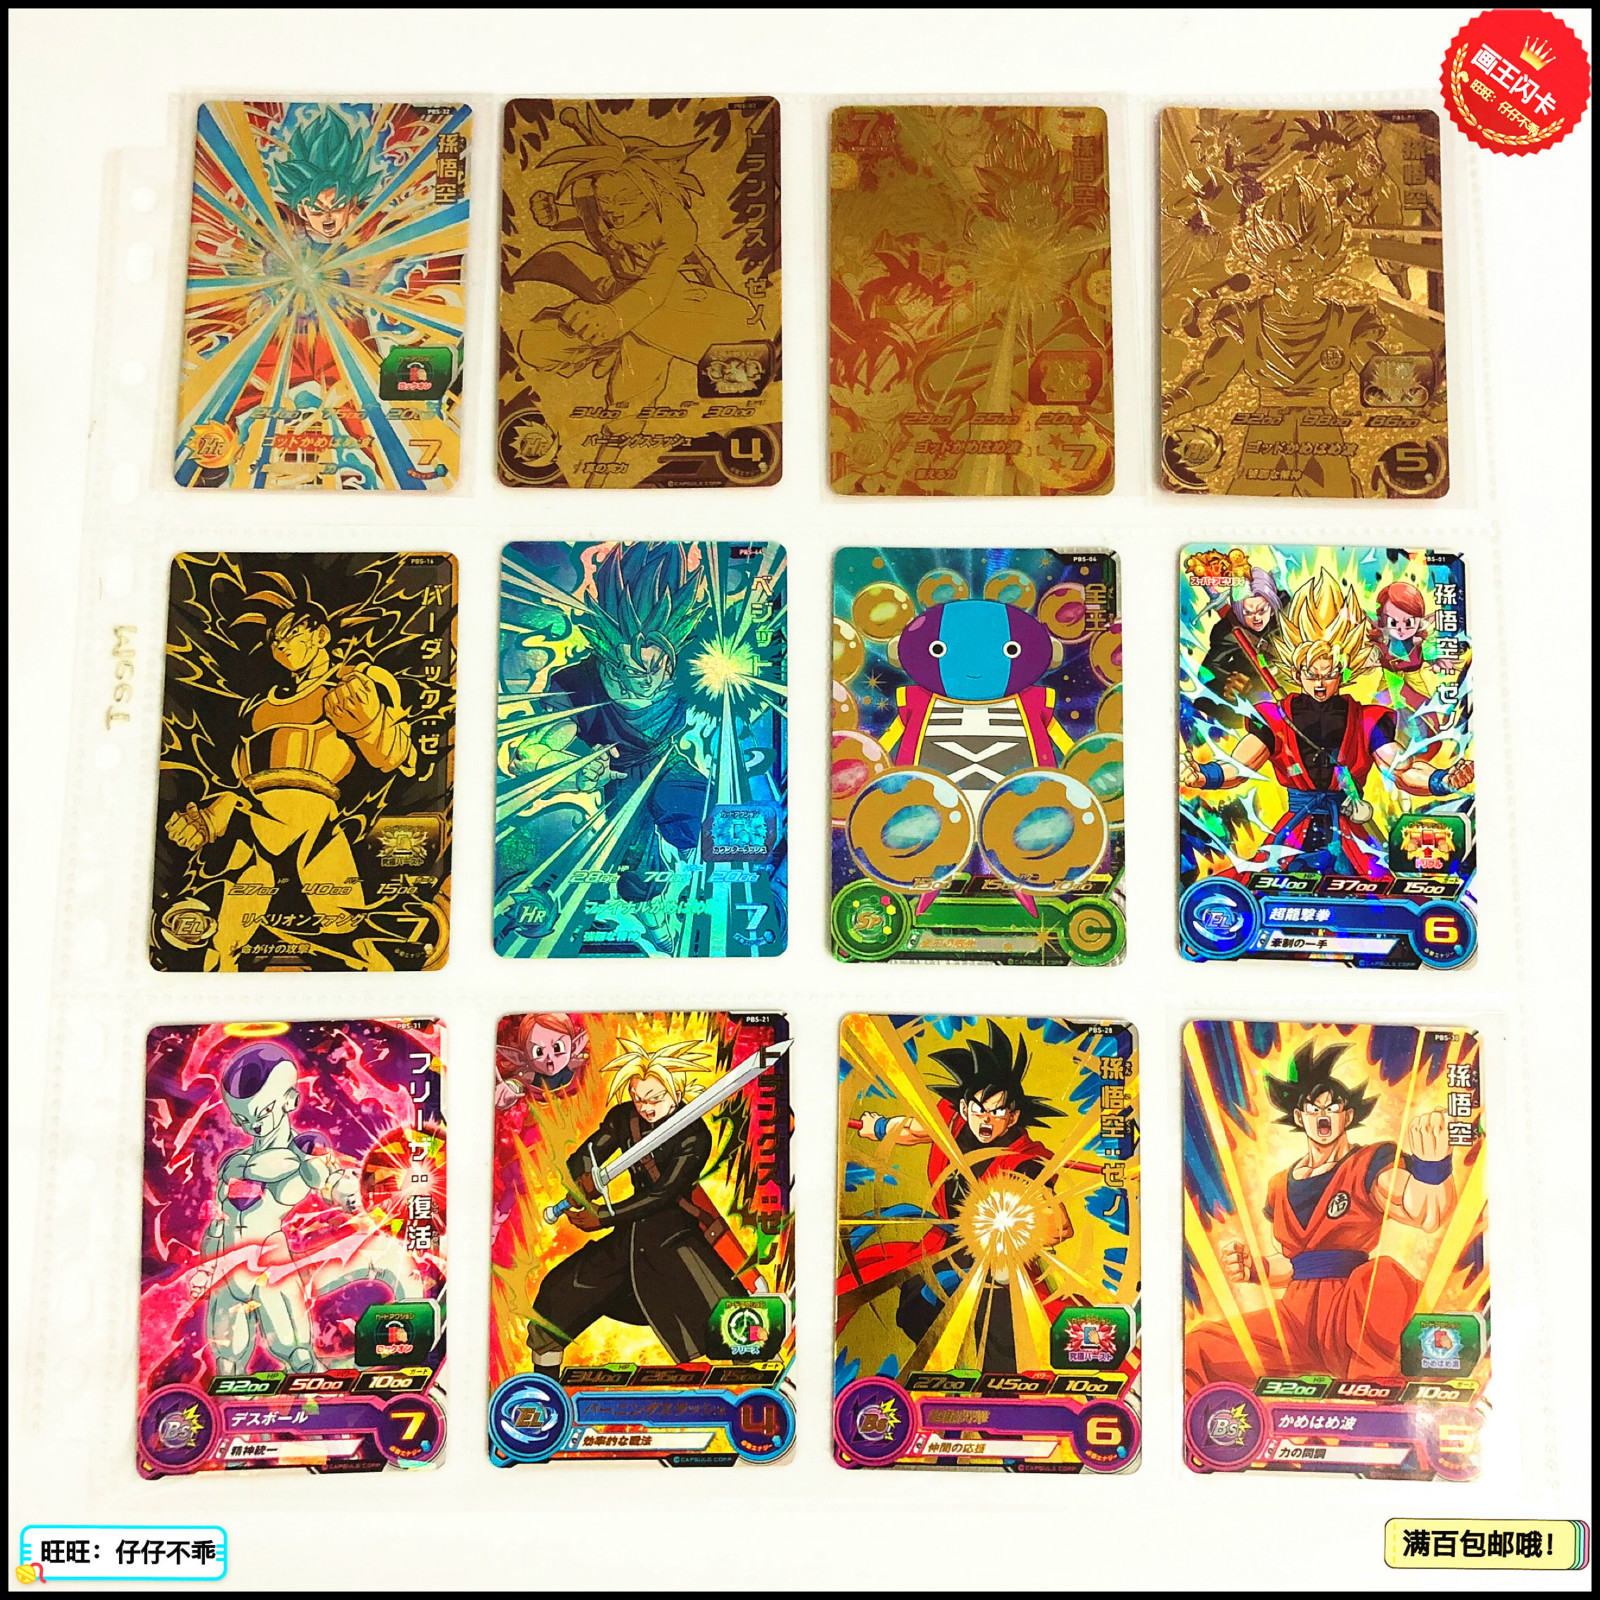 Japan Original Dragon Ball Hero Card PBS 4 Stars Goku Toys Hobbies Collectibles Game Collection Anime Cards